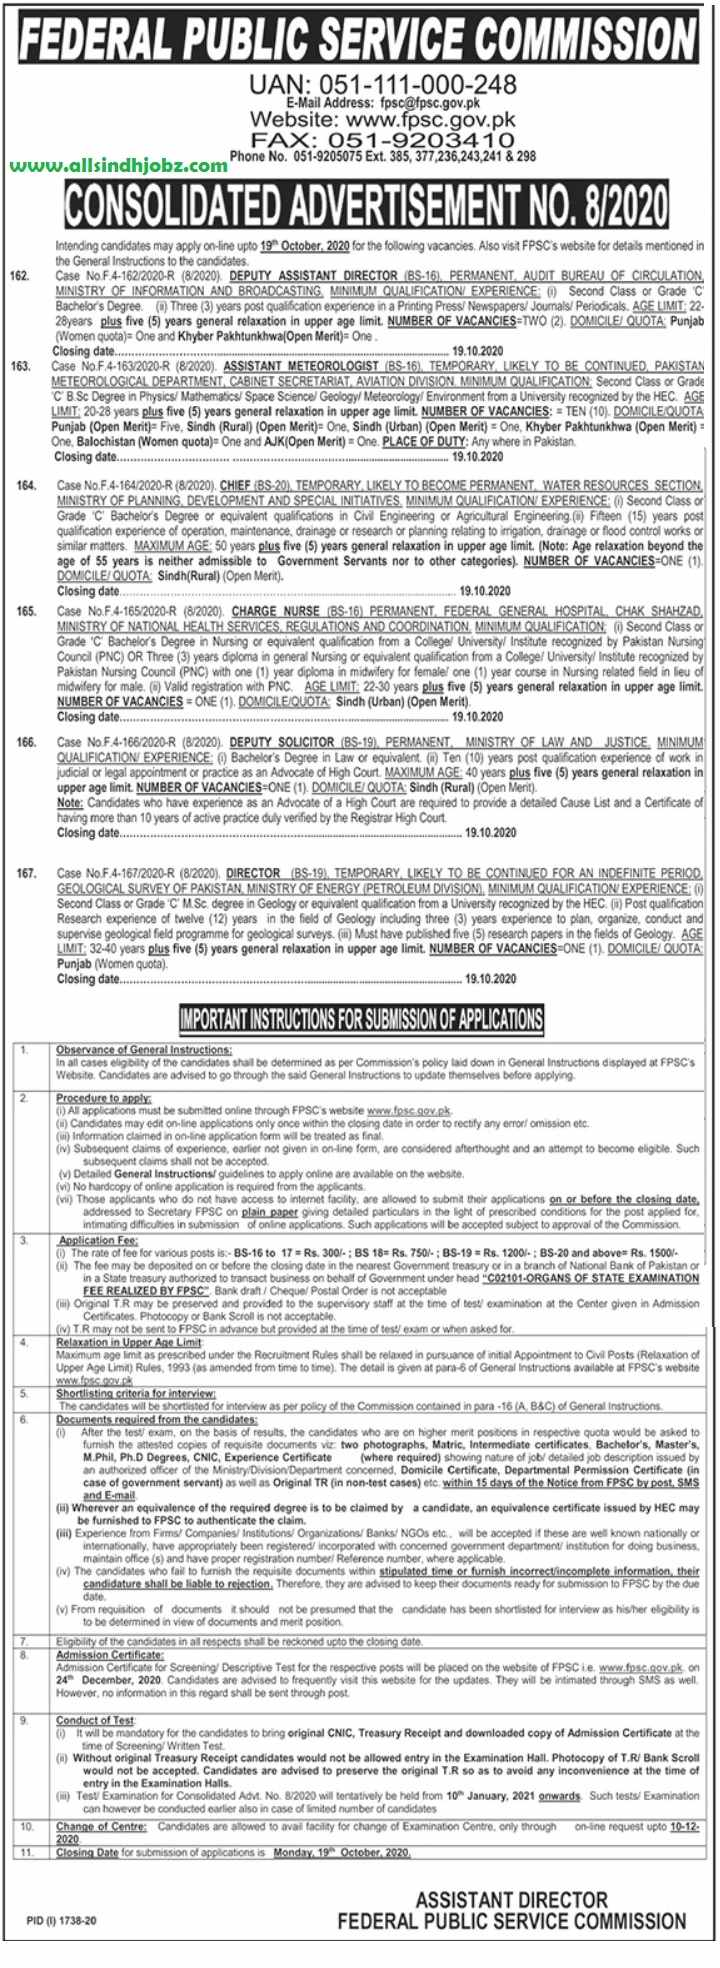 Apply Online for FPSC Jobs 2020 Apply Online Federal Public Service Commission Consolidated advertisement 08/2020